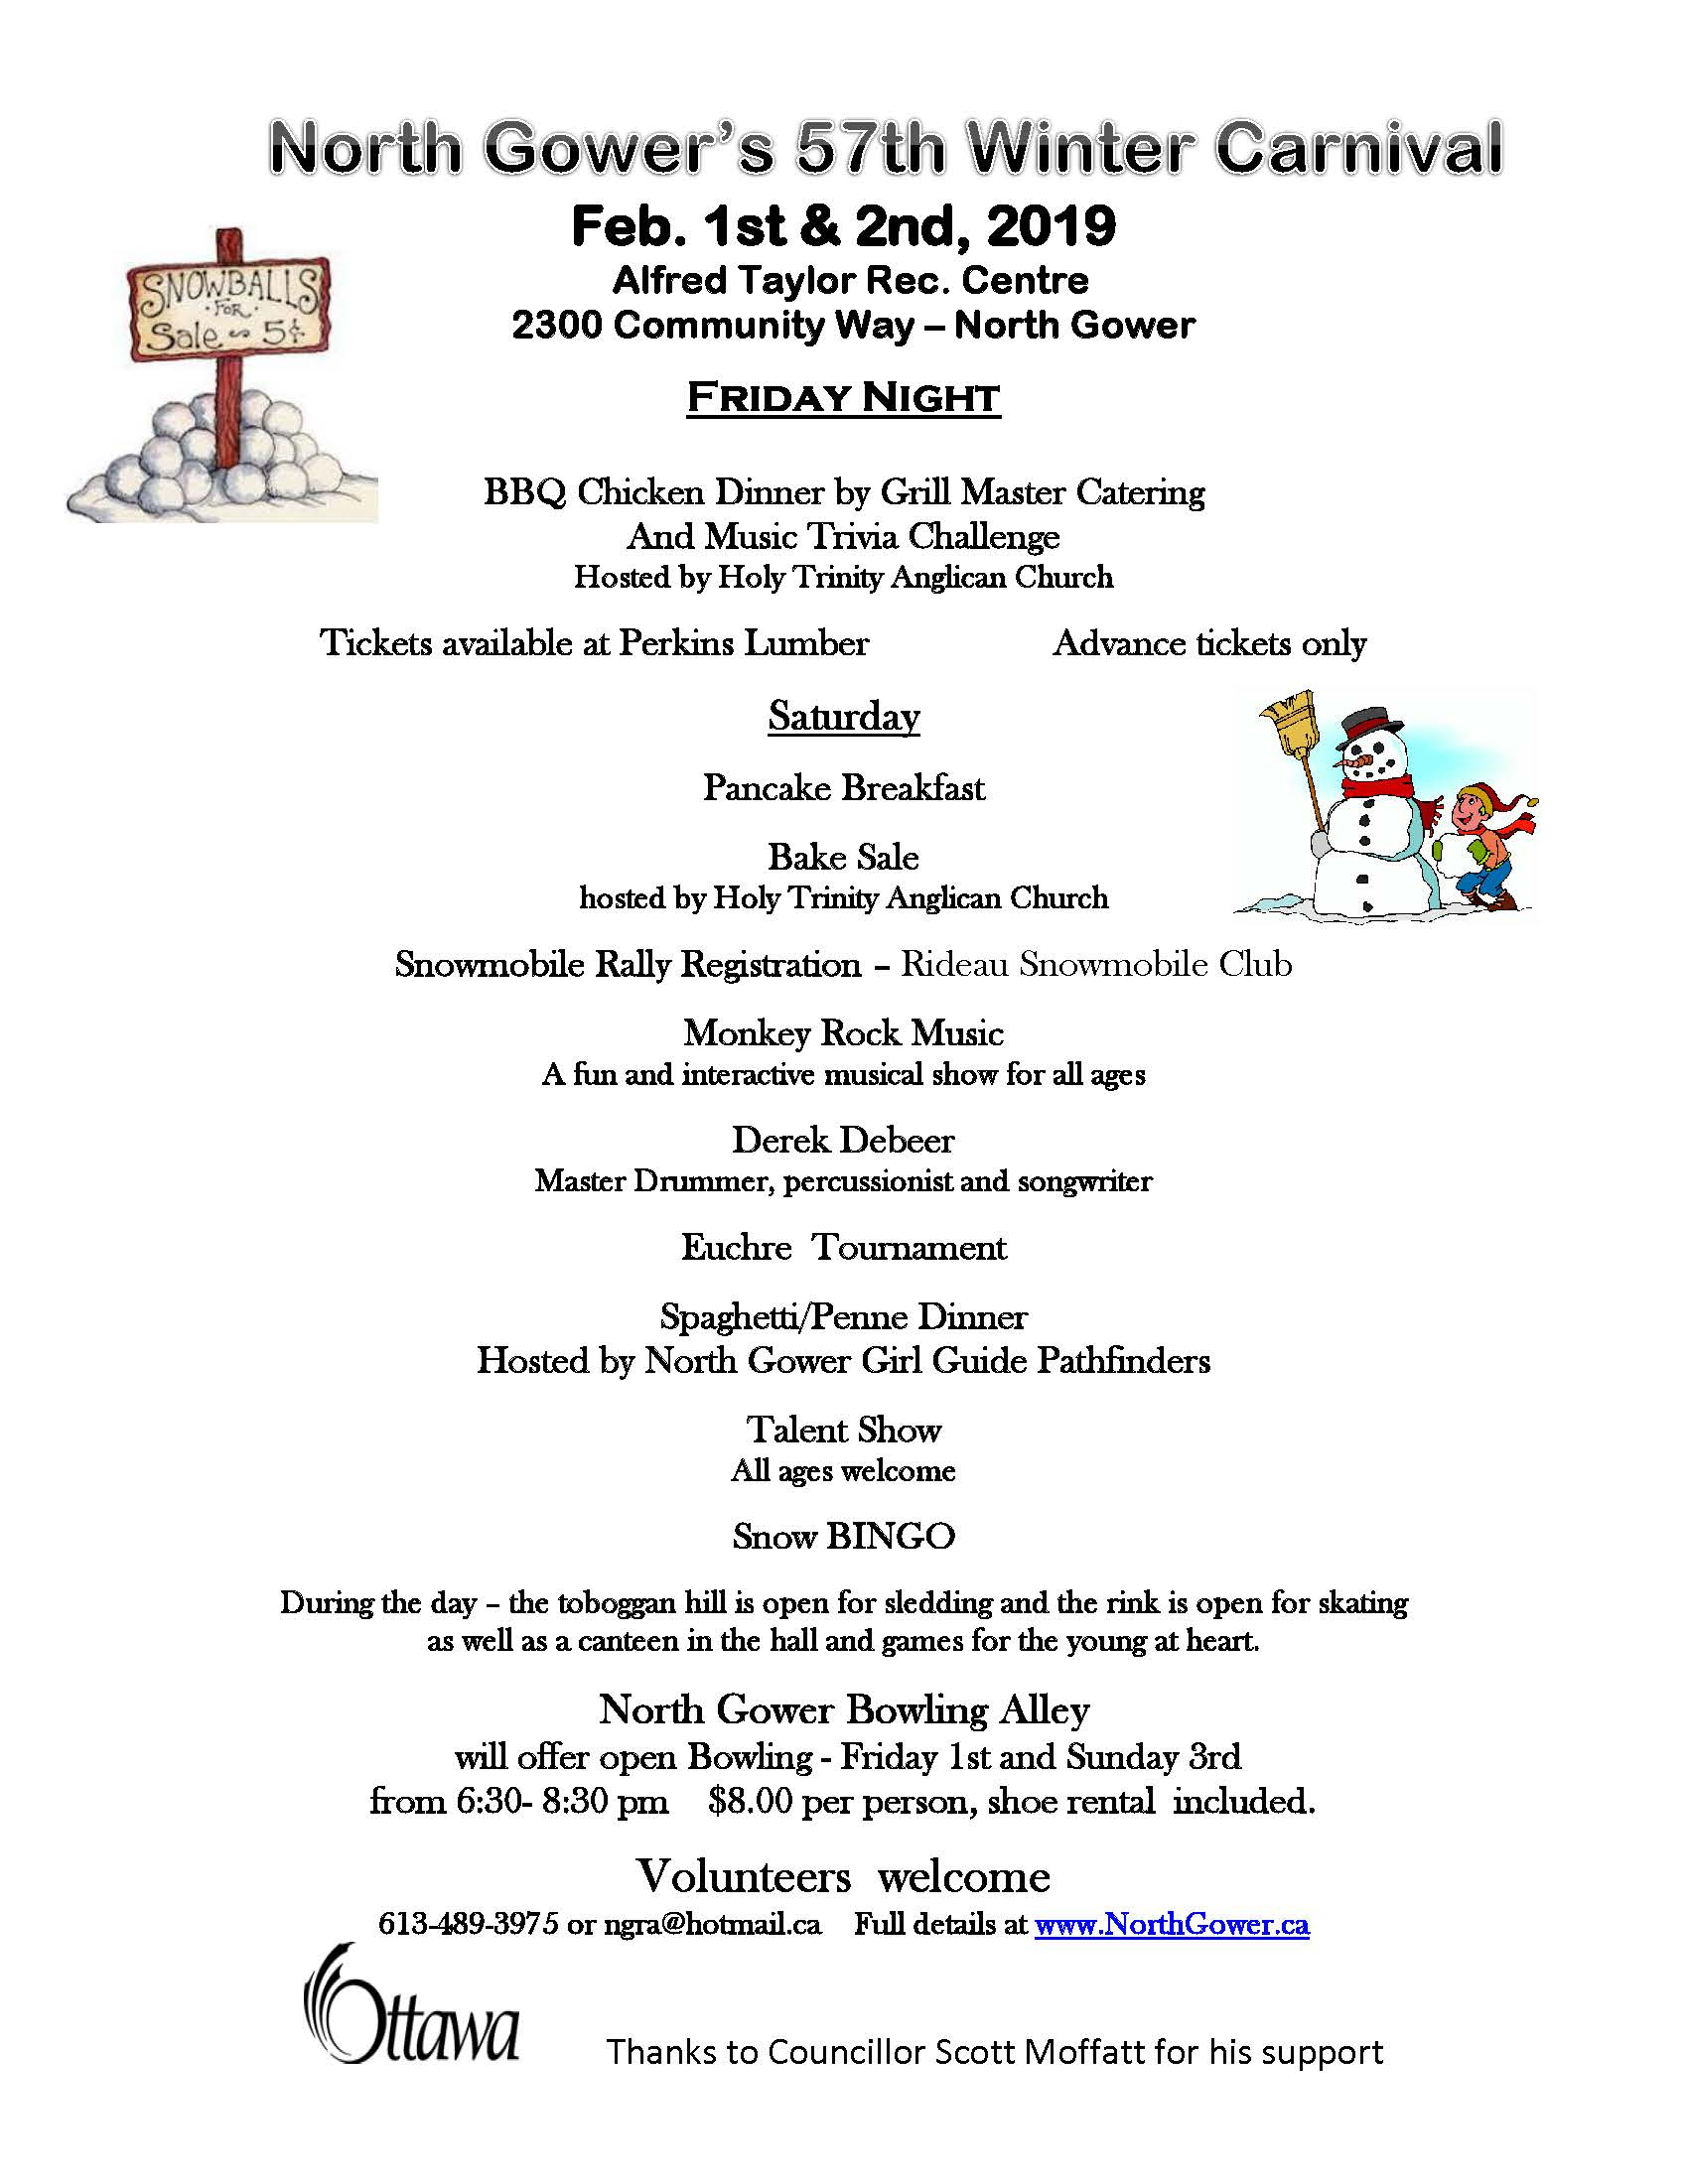 Winter Carnival flyer page 1 2019 second edition.jpg